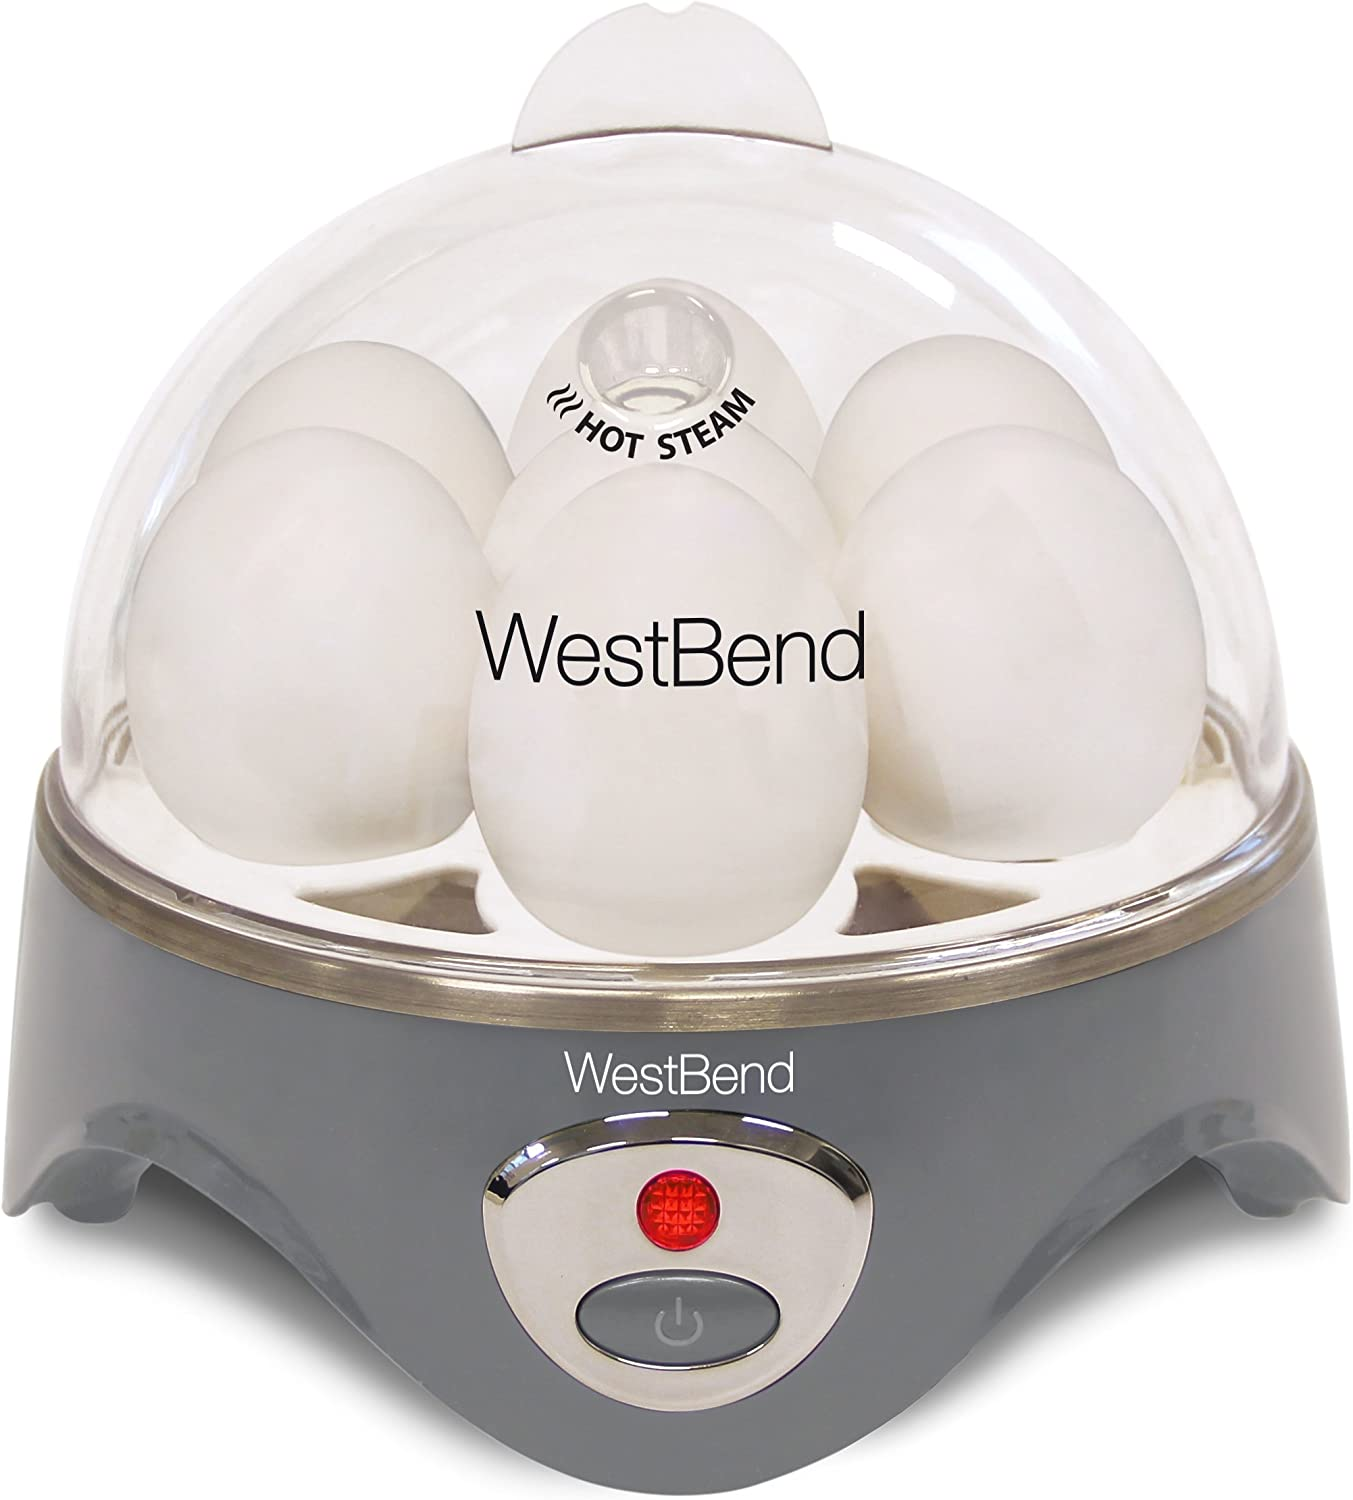 West Bend Automatic Electric Cooker Hard-or Soft-Cook 7 Eggs or 2 Poached or Scrambled, 360-Watt, Gray